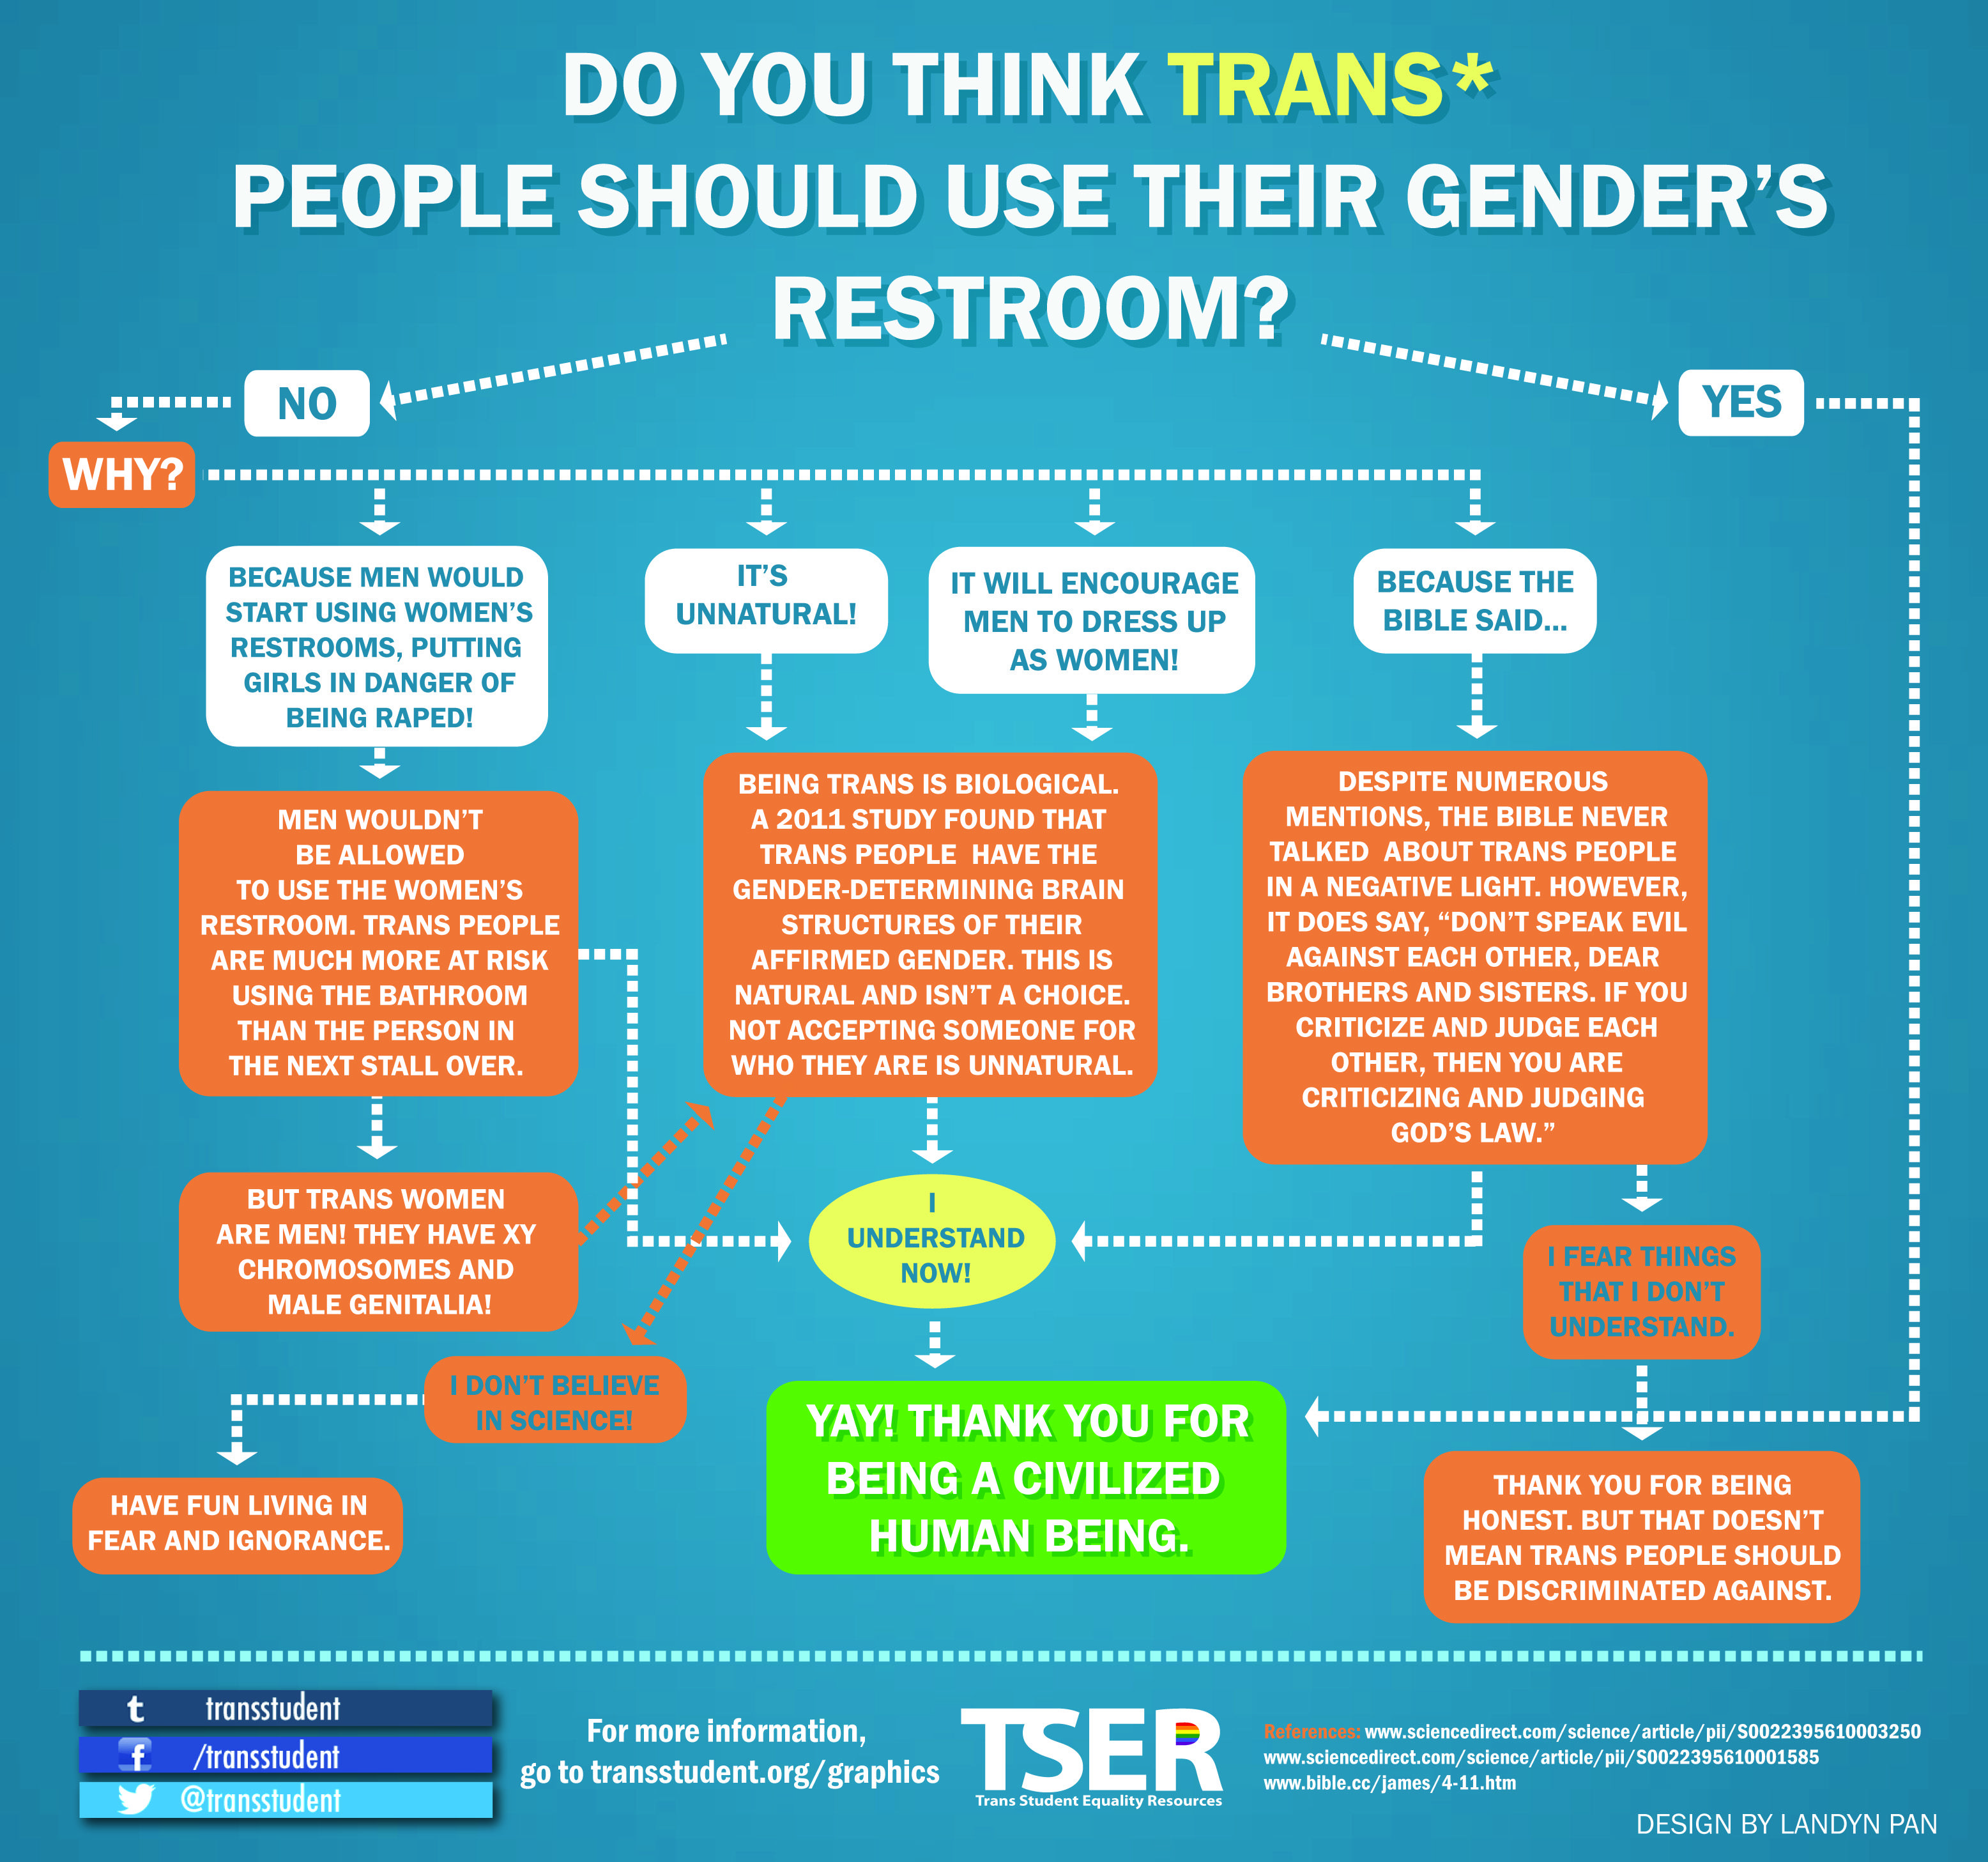 can we put this chart in every public restroom? 'cause that would